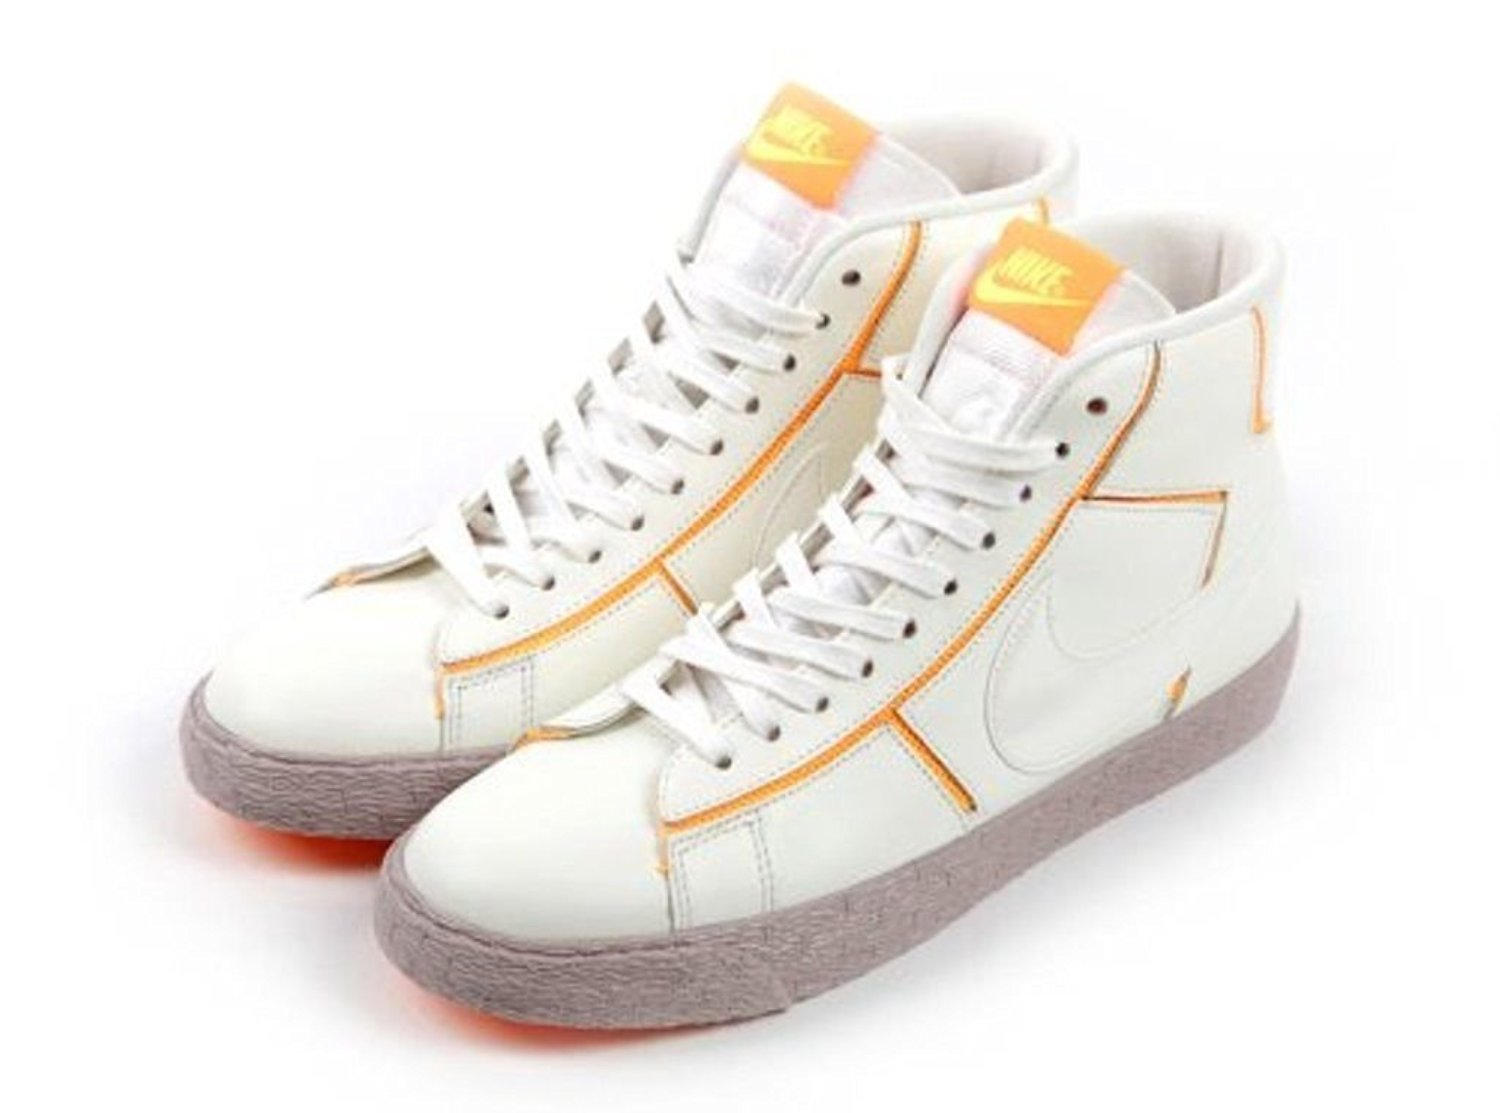 online retailer d5117 d4628 Get Quotations · Nike Blazer Mid Cut Out Premium Women s Shoes Sail atomic  Mango medium Orewood Brown